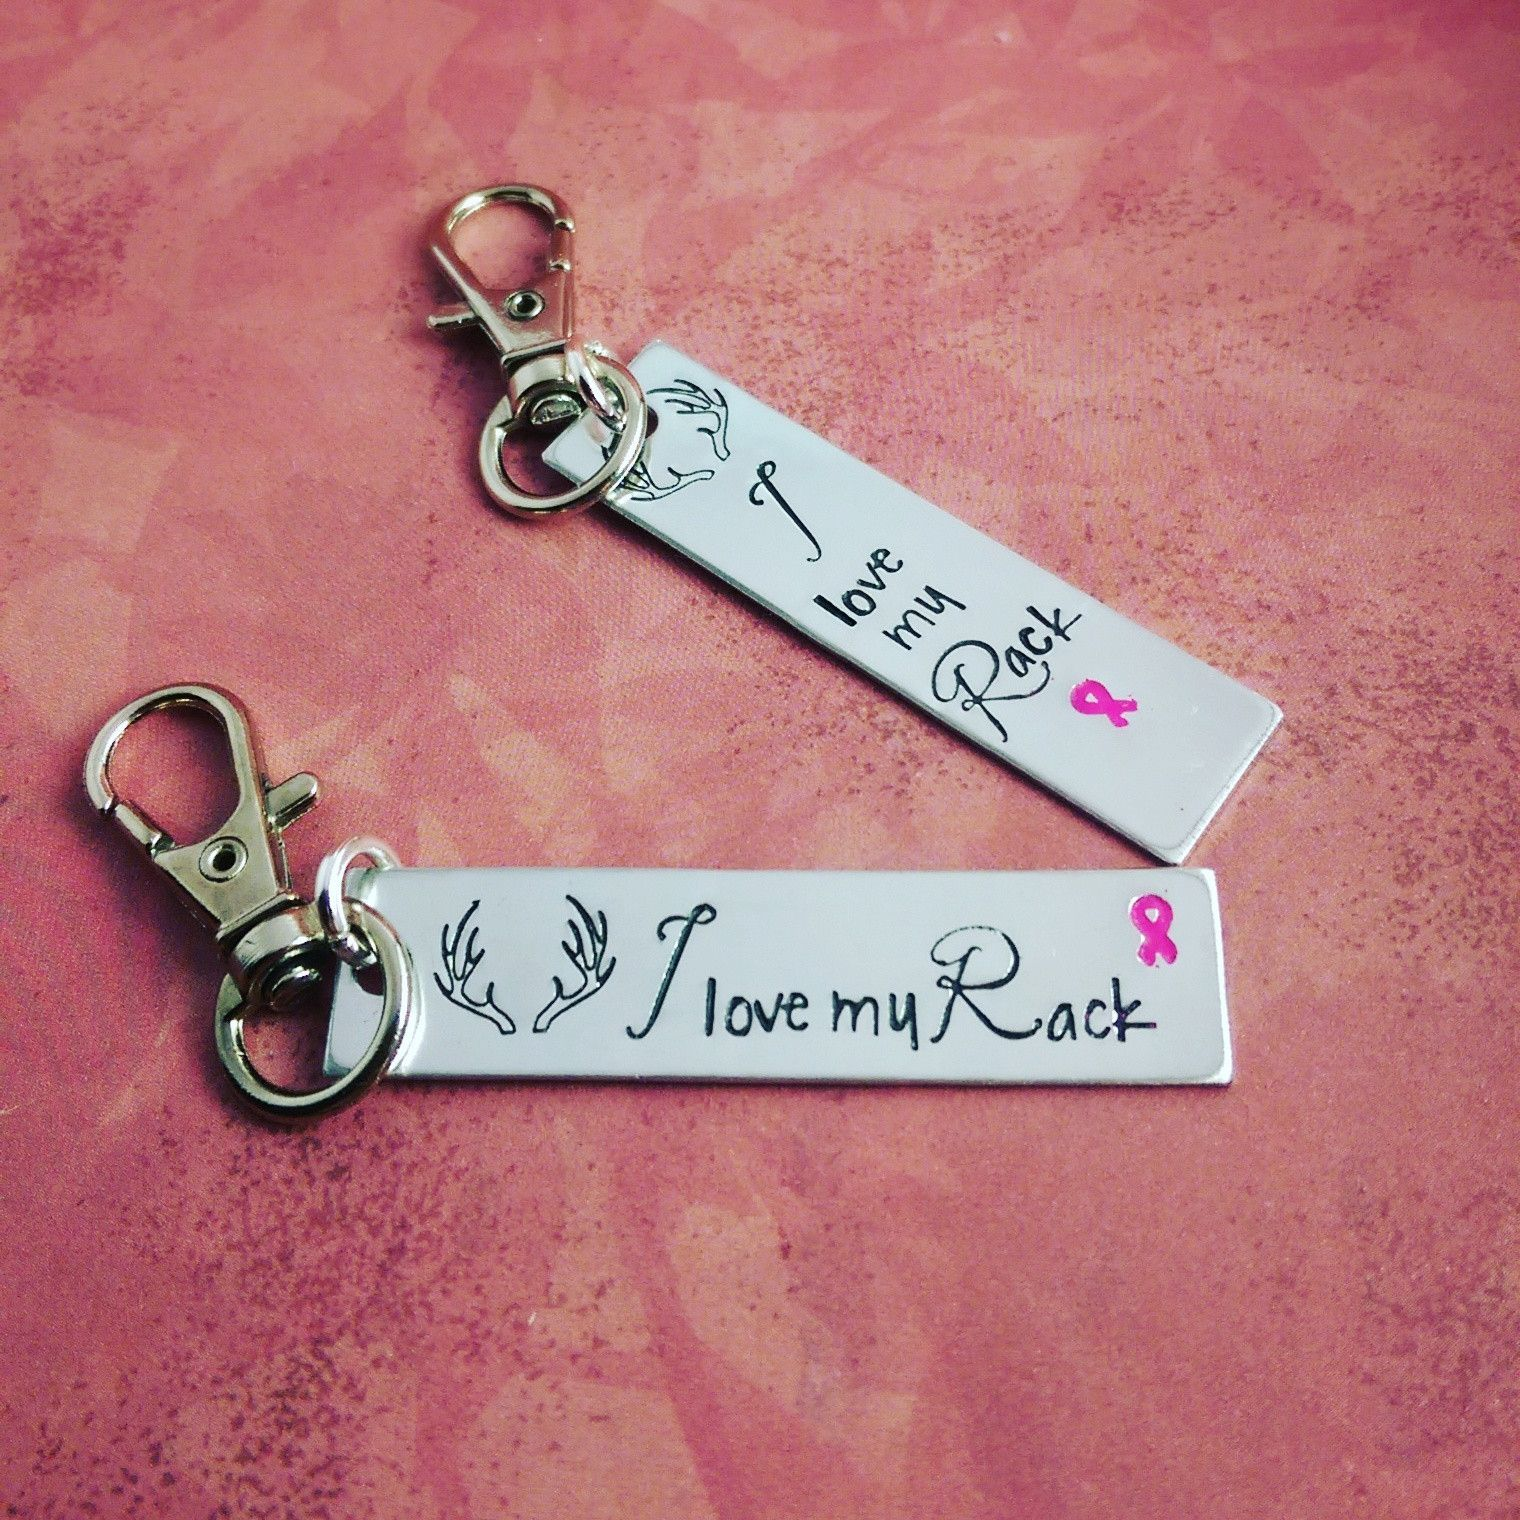 I love my rack keychain - Breast Cancer Awareness Jewelry - Hand Stamped